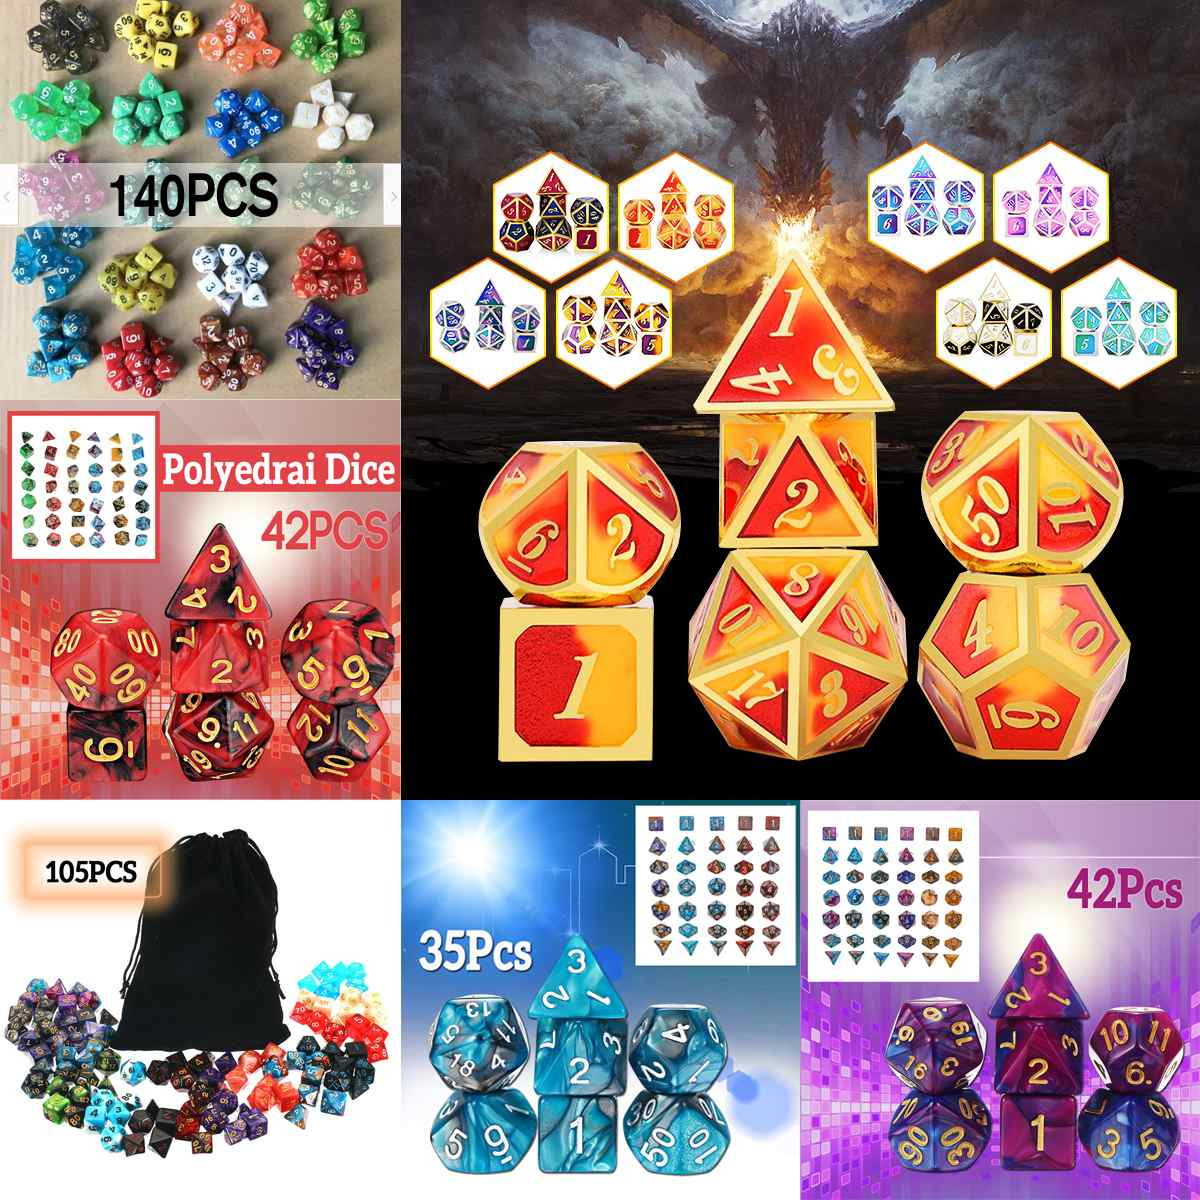 35/42/105/140PCS Polyhedral Dices For Dungeons And Dragons DND RPG MTG Desk Game With Black Pouch Bags